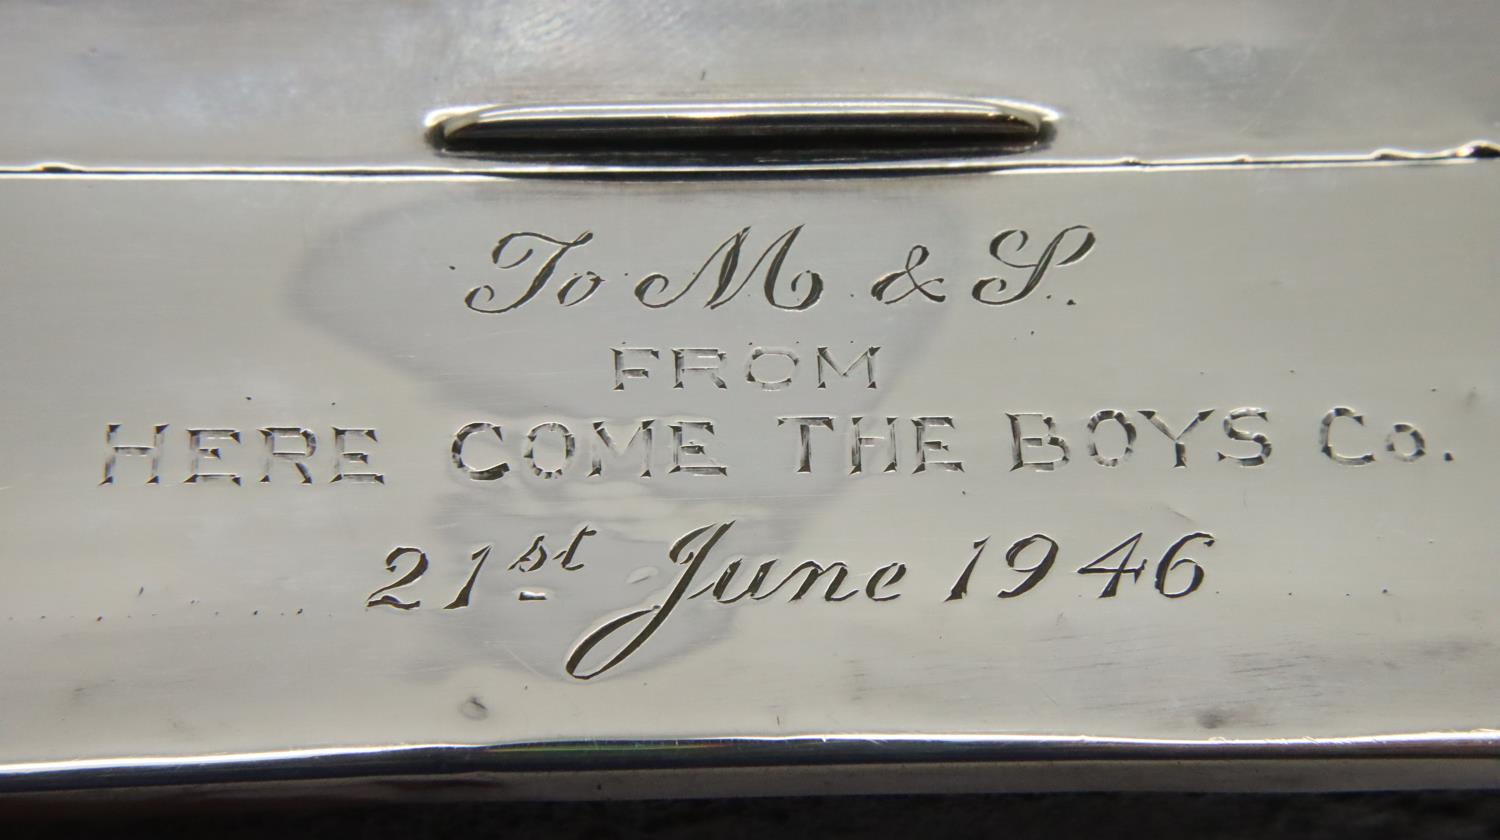 Hallmarked silver cigarette box, cedar lined and dated 1946 by inscription. P&P Group 1 (£14+VAT for - Image 3 of 4